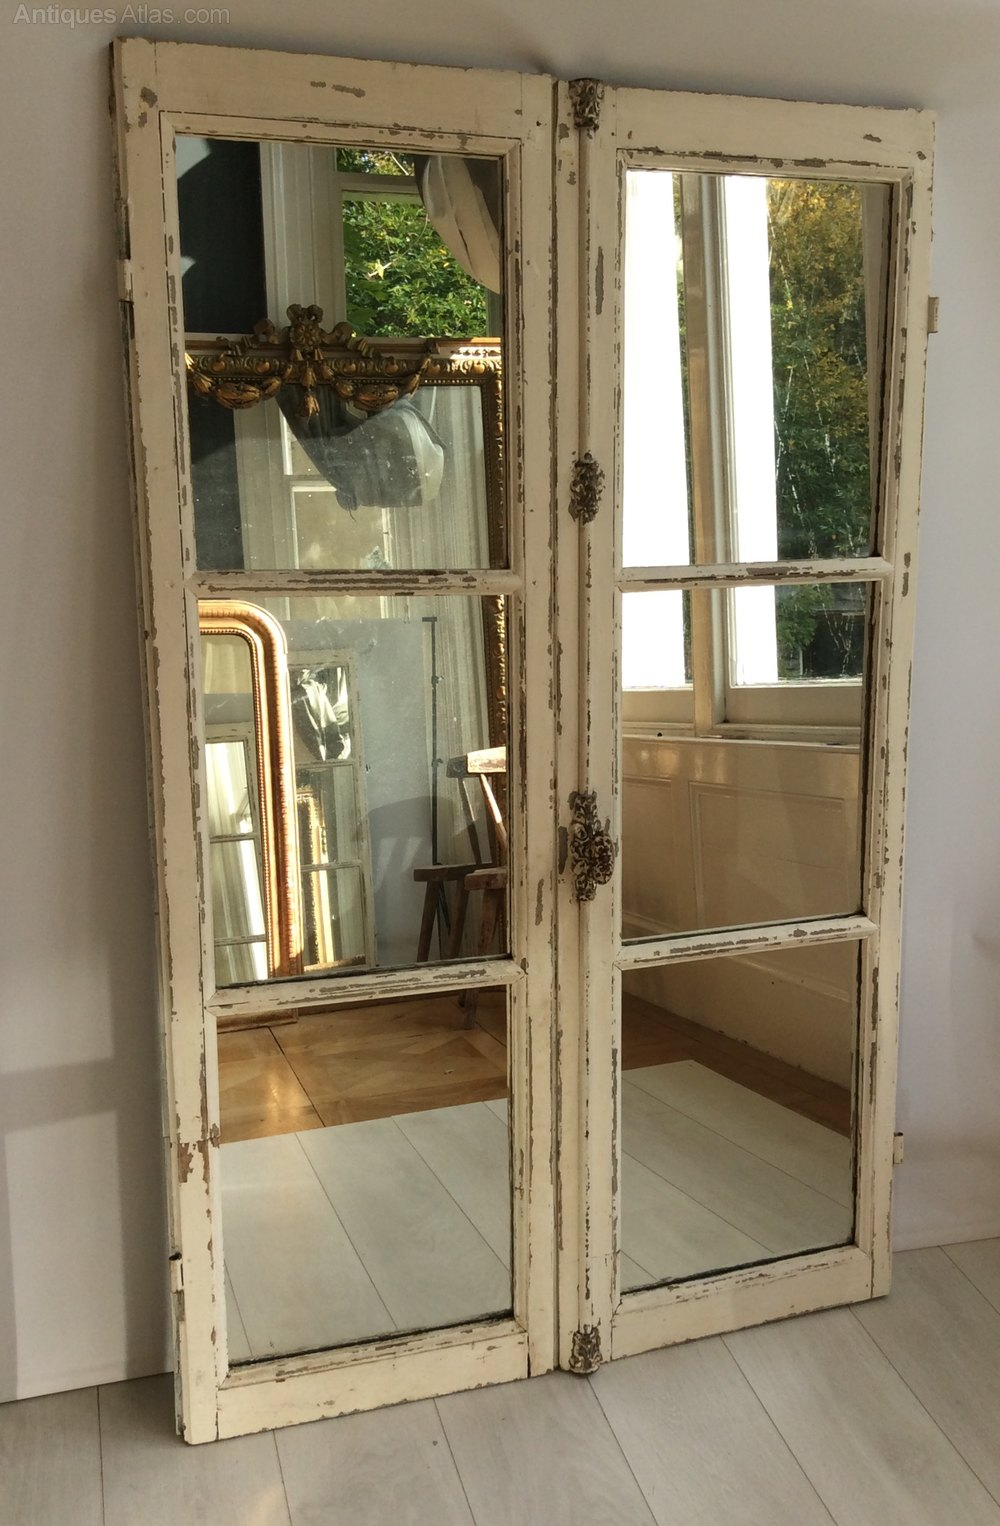 Antiques Atlas Antique French Window Mirror